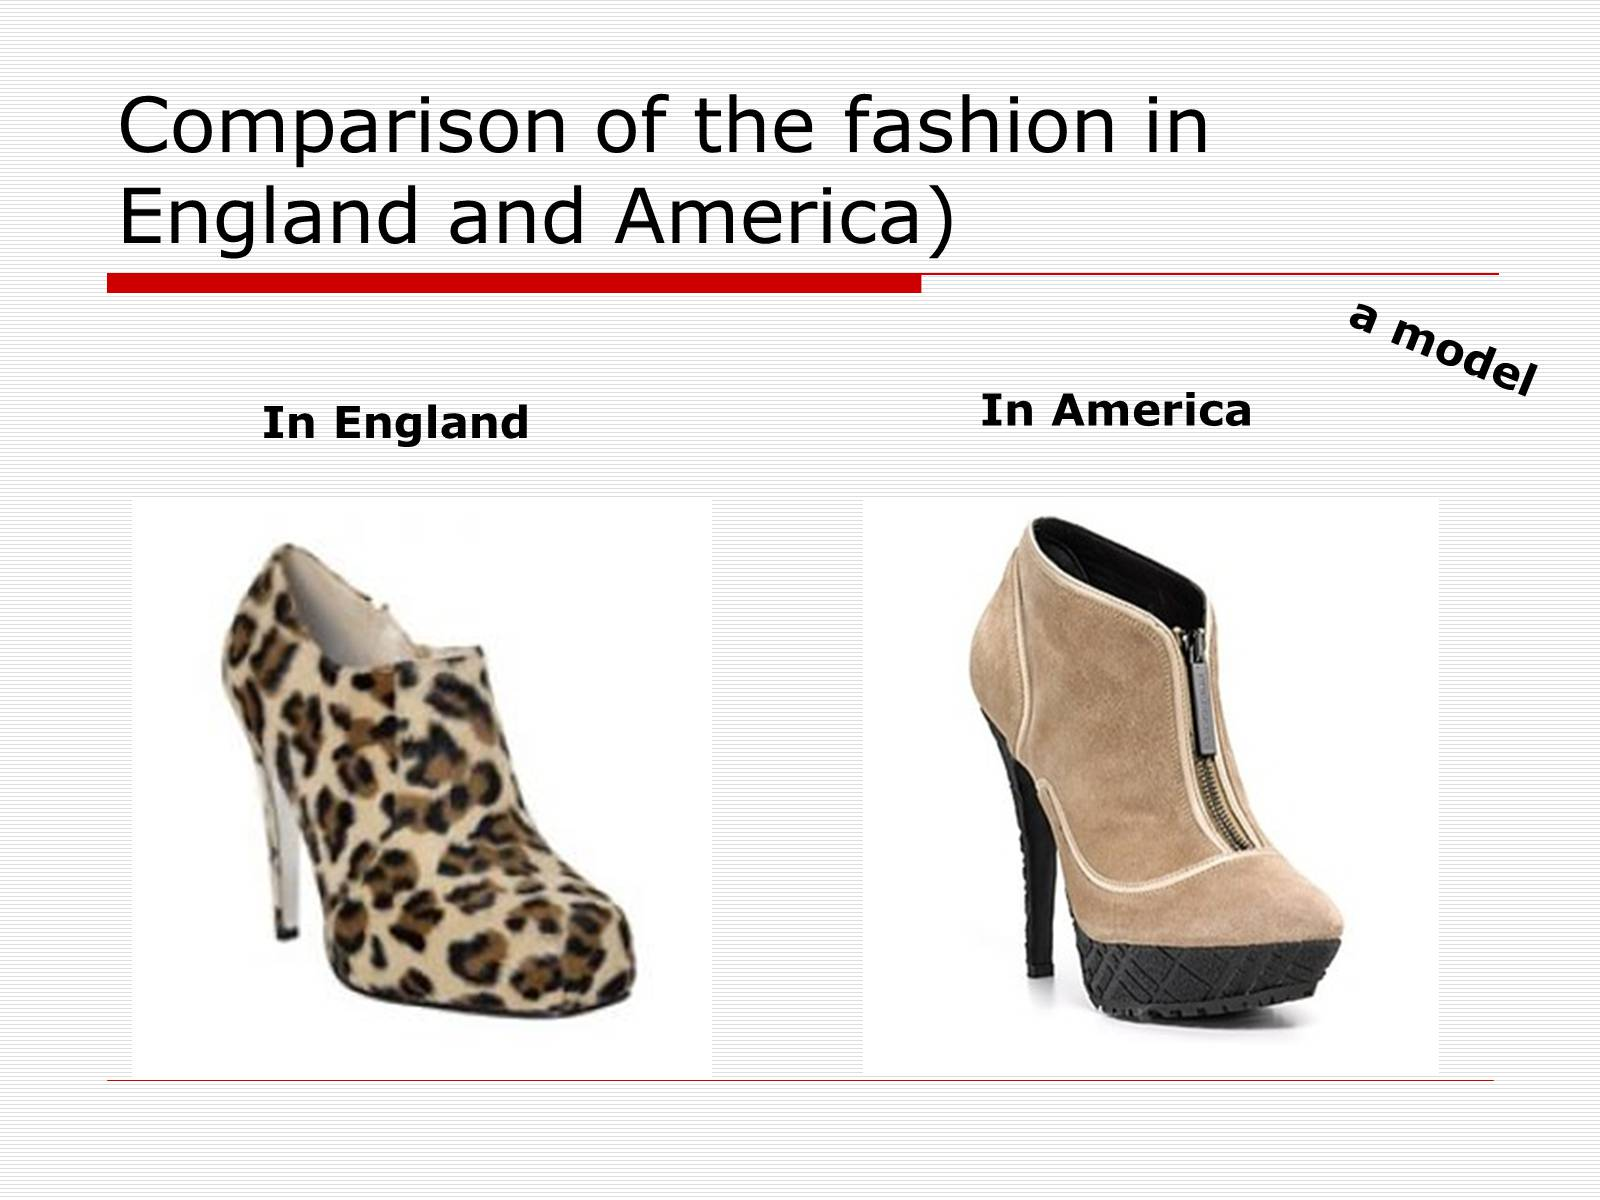 Презентація на тему «Comparison of the fashion in England and America» - Слайд #50